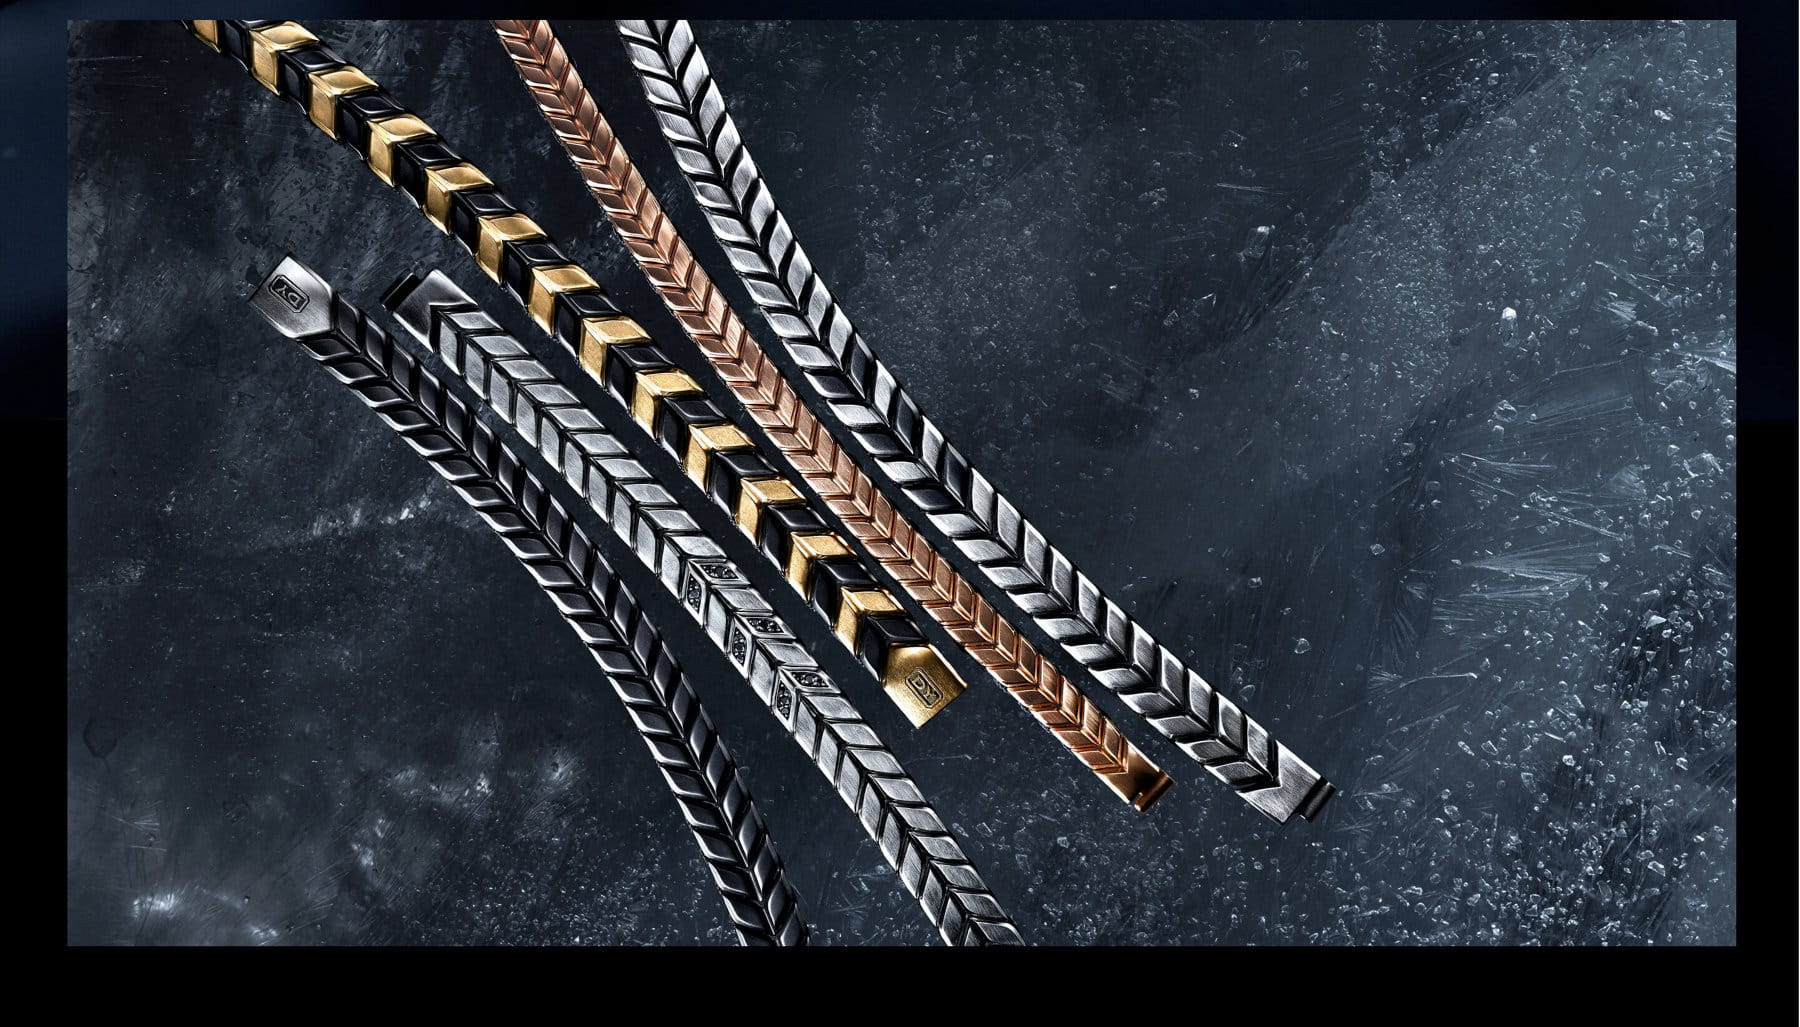 A color photo shows five David Yurman men's Chevron bracelets arranged in rows next to each other atop a snow-dusted dark, icy surface. The bracelets are crafted from black titanium with sterling silver, sterling silver with pavé black diamonds, 18K yellow gold and black titanium, 18K rose gold or sterling silver with black titanium.